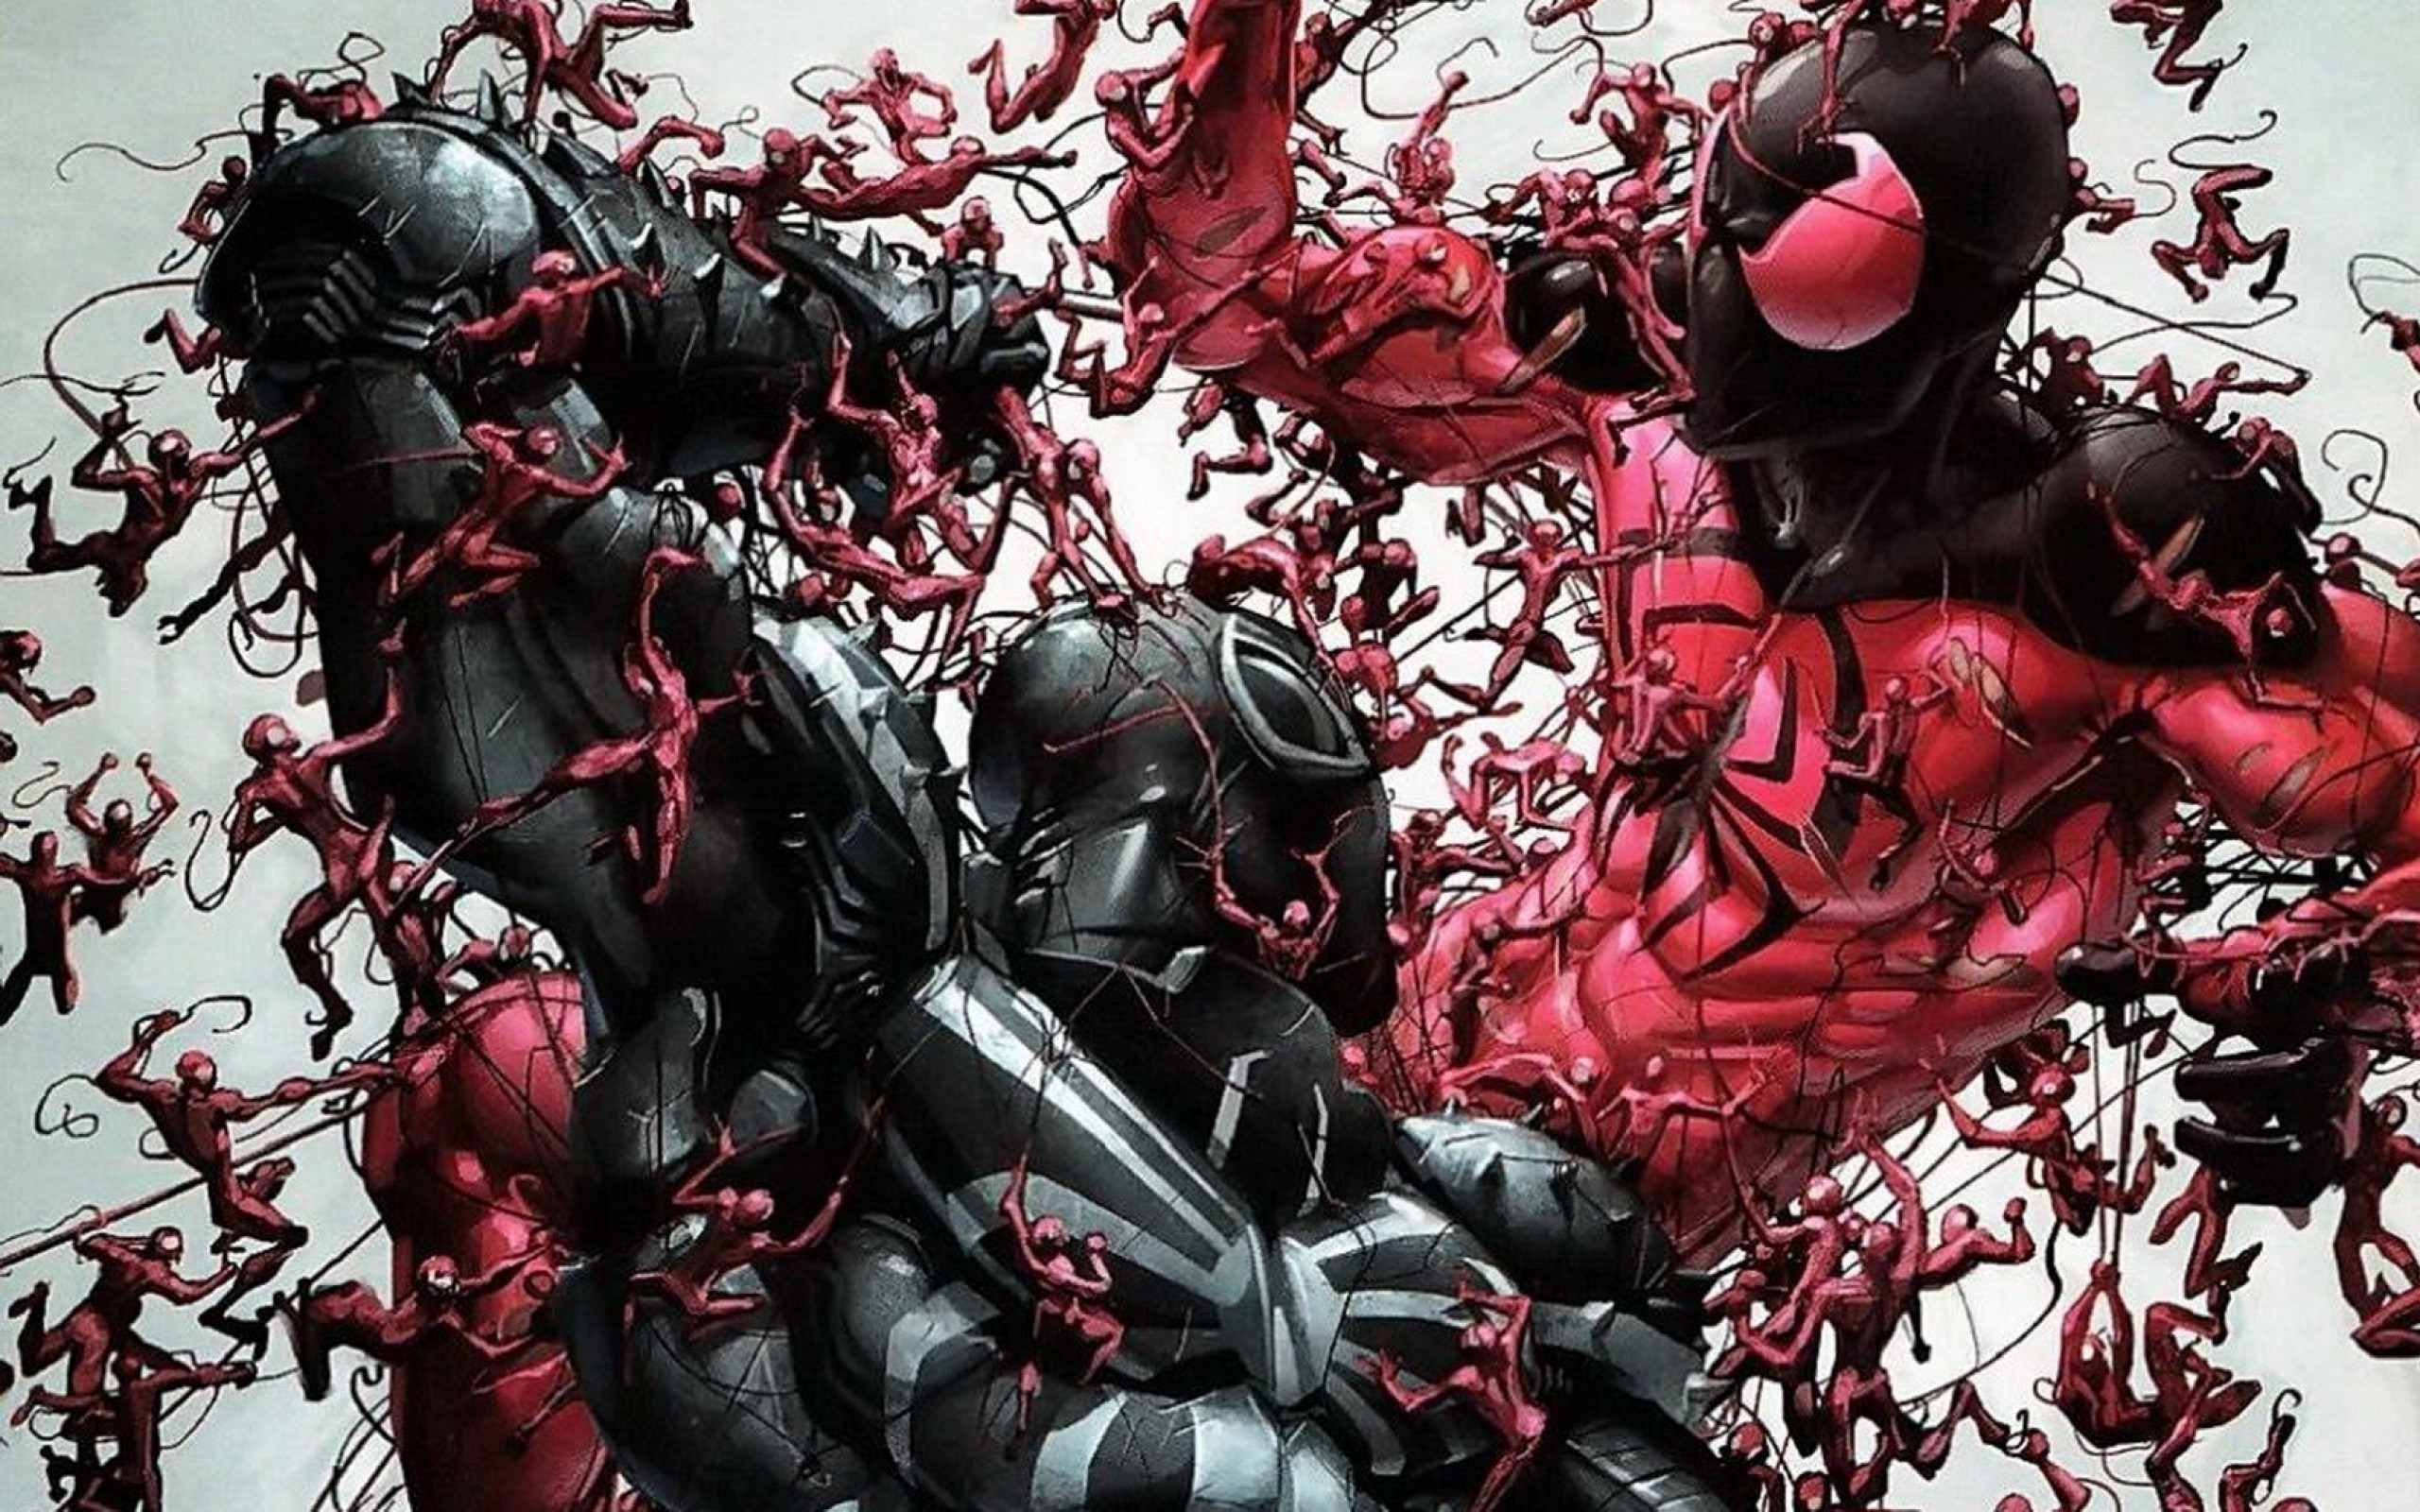 Venom Vs Carnage Wallpapers Full HD with HD Wallpaper Resolution  px 2.45 MB Movies Anti